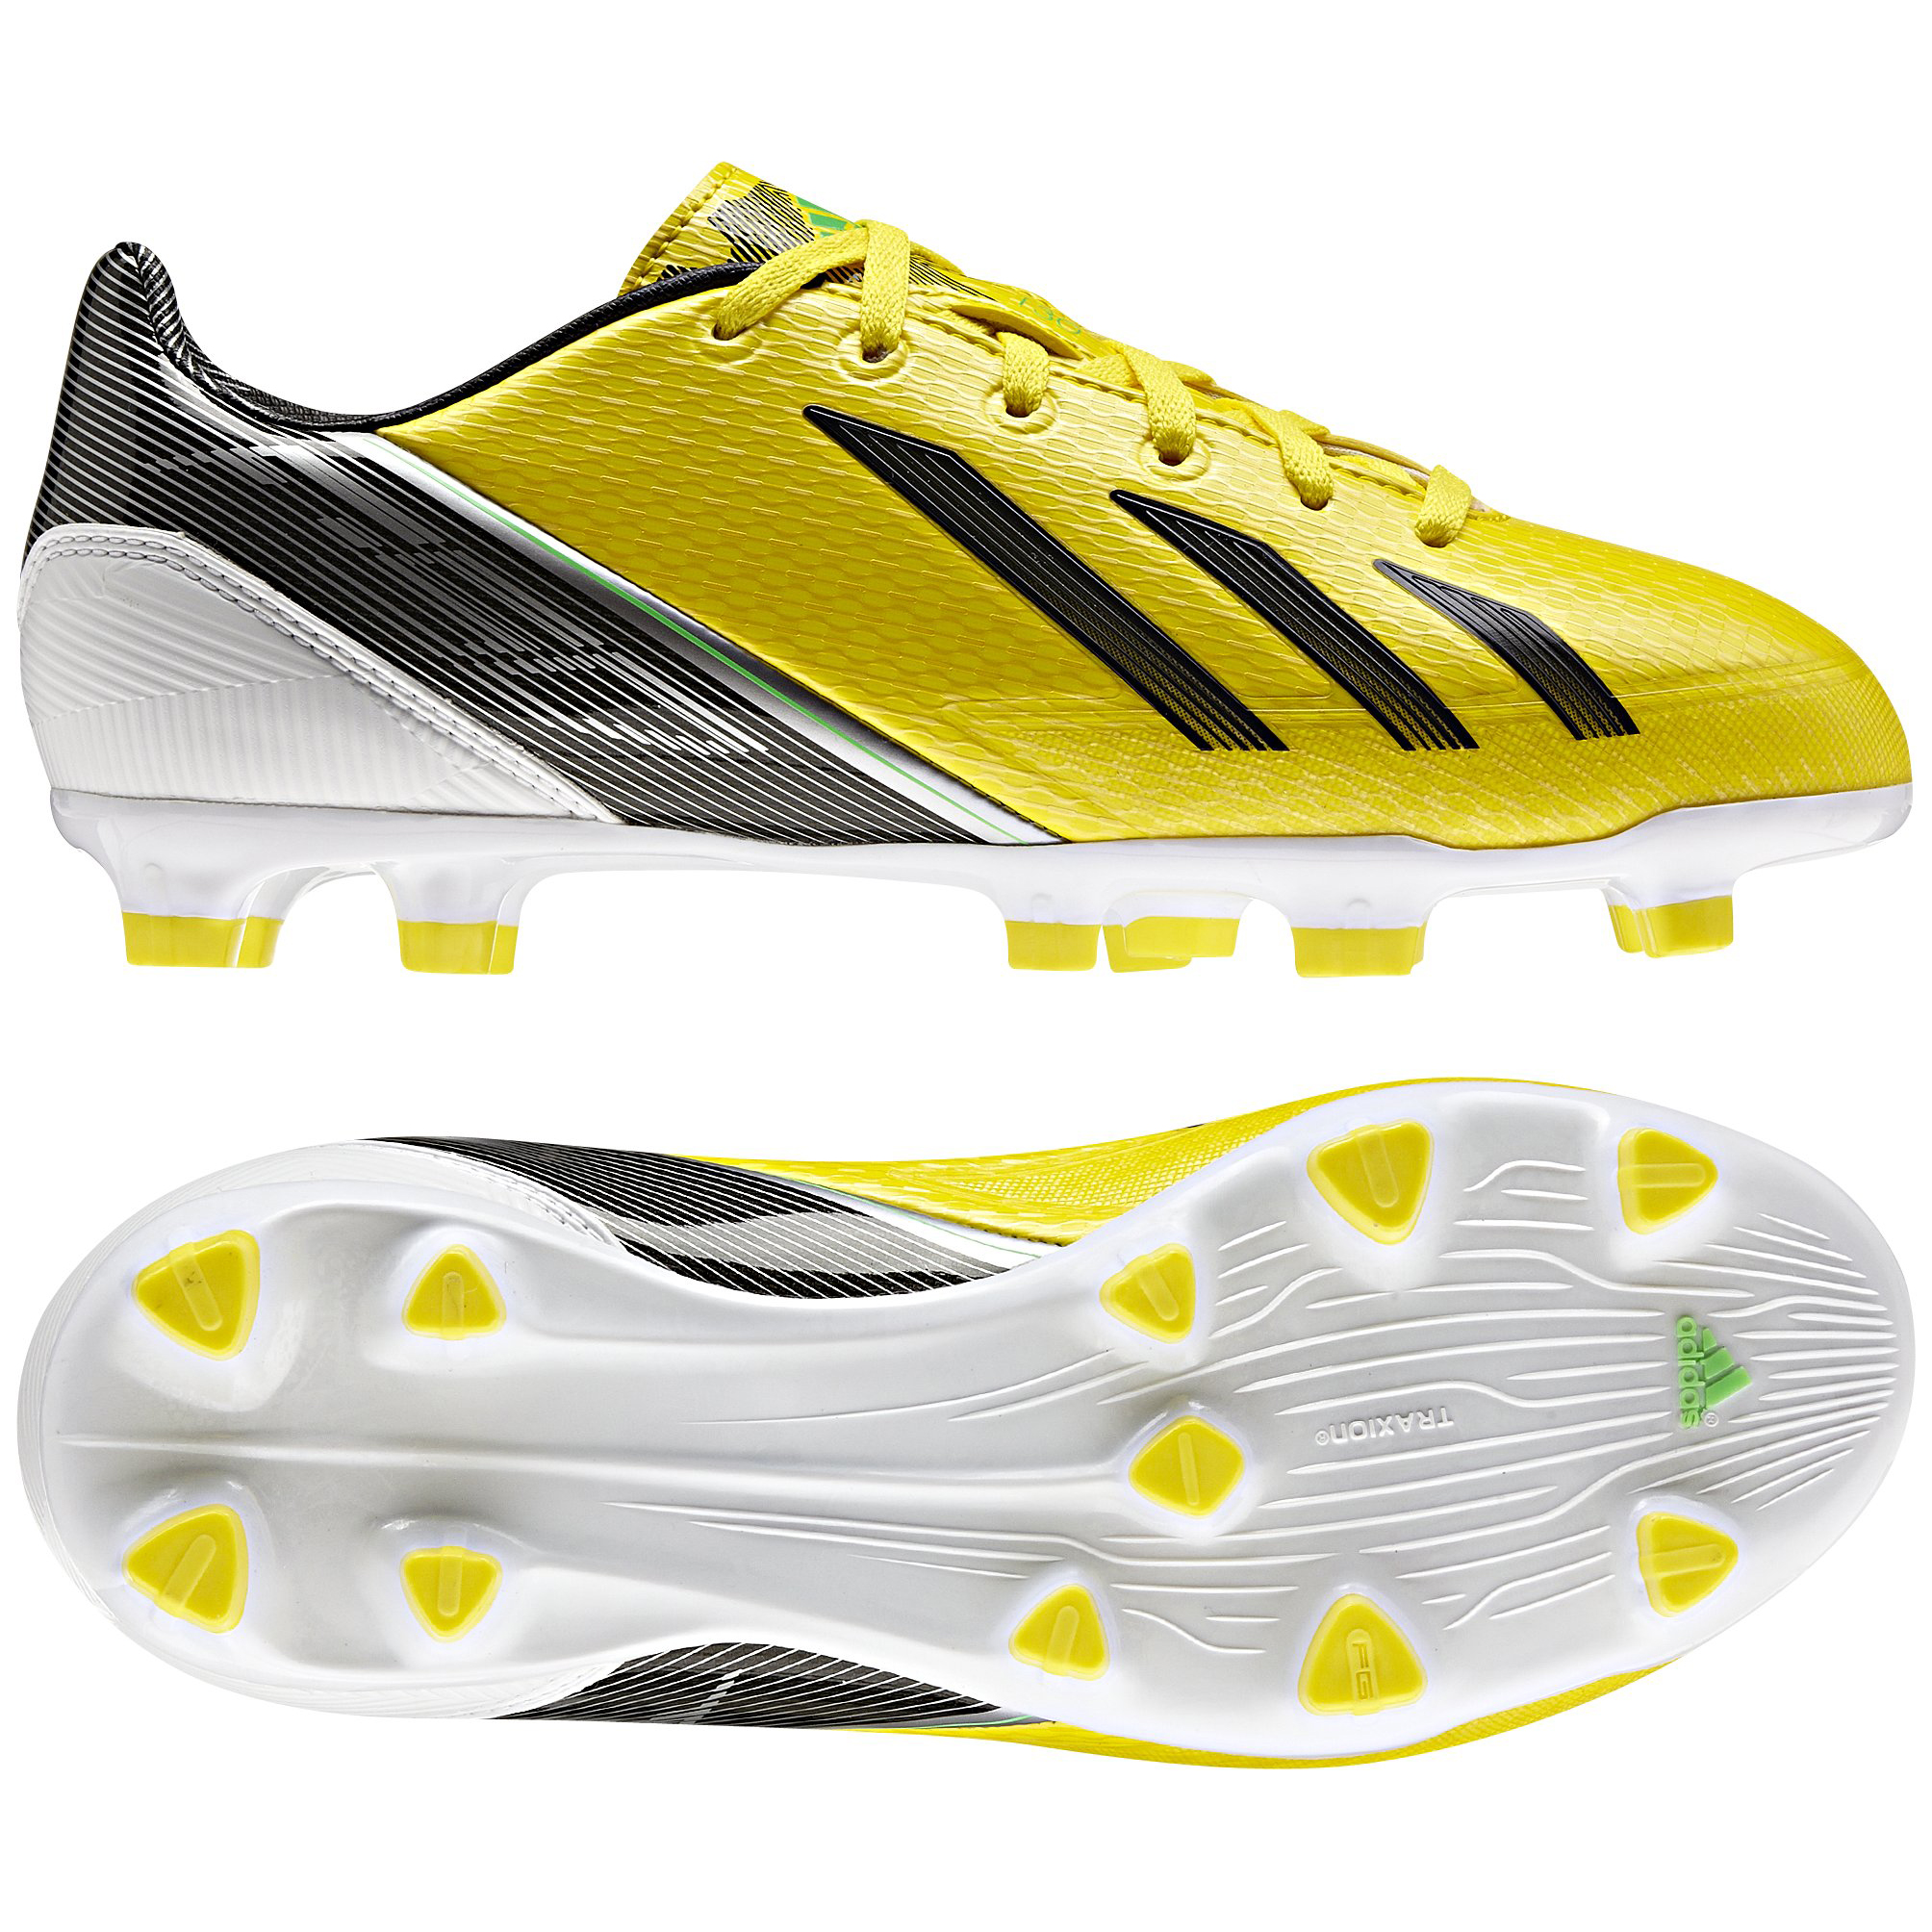 adidas AdiZero F30 TRX Firm Ground Football Boots - Vivid Yellow/Black/Green Zest - Kids